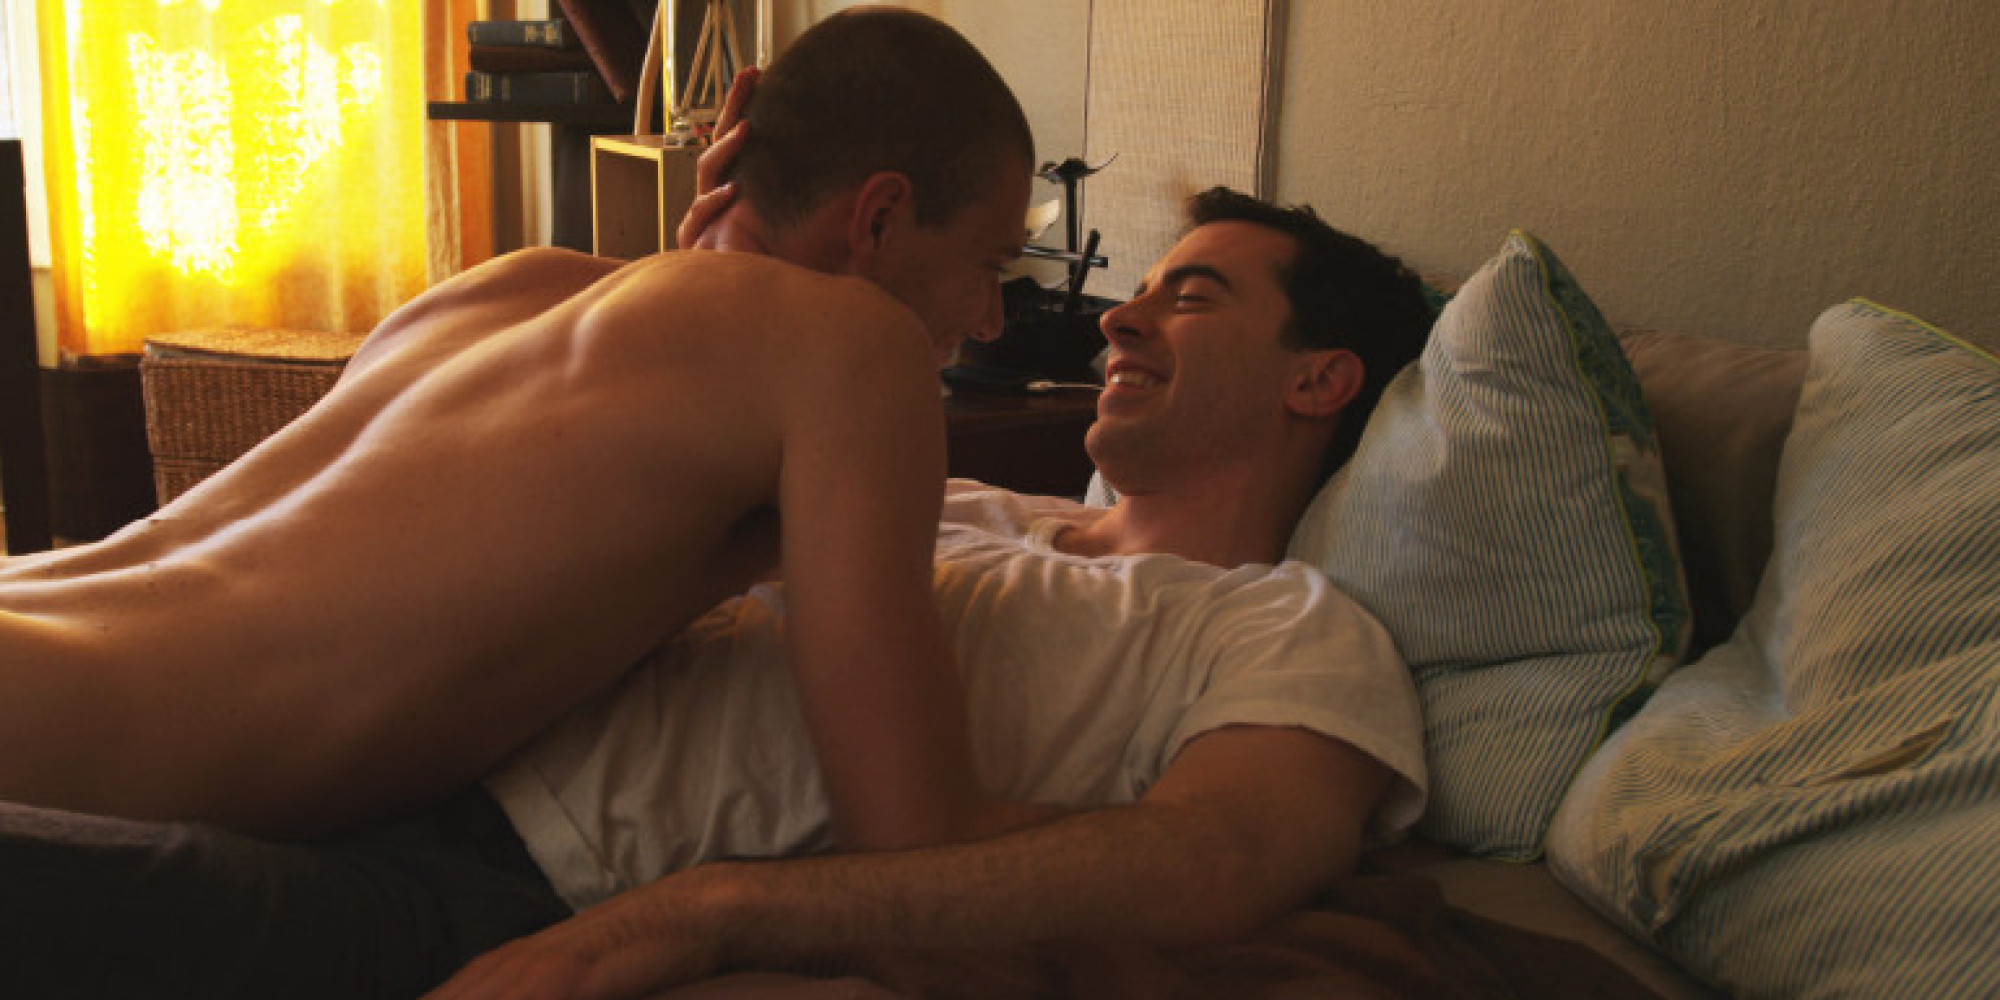 Gay man in love movie